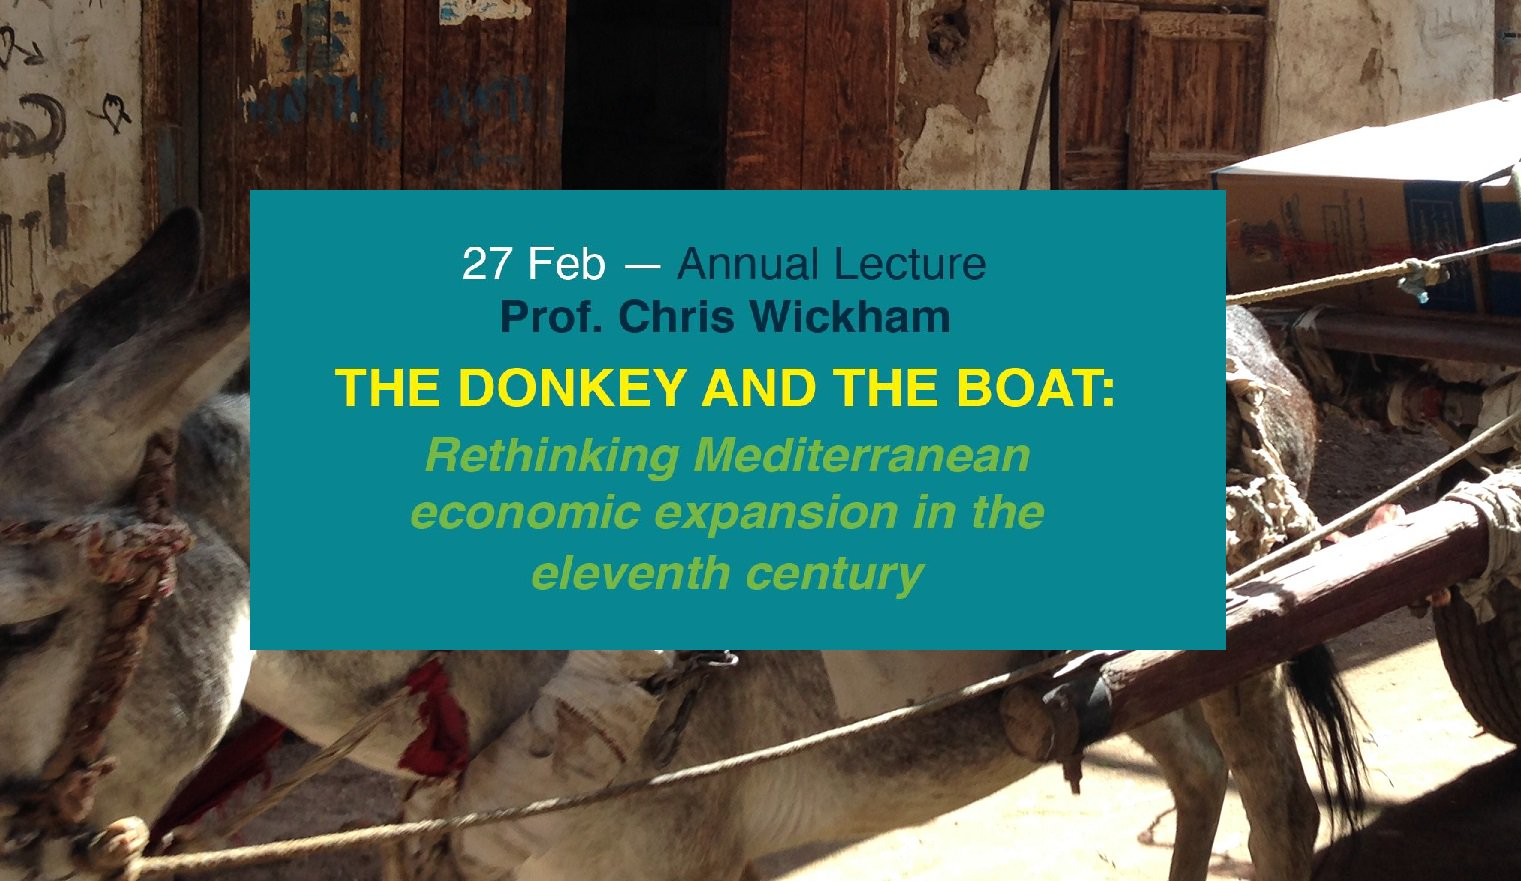 Prof. Chris Wickham to give BRIHC's annual lecture, Mon 27 Feb #medieval #mediterranean #econhist, all welcome  https://t.co/7jDPzQF4yC https://t.co/6vYZAoxHXZ